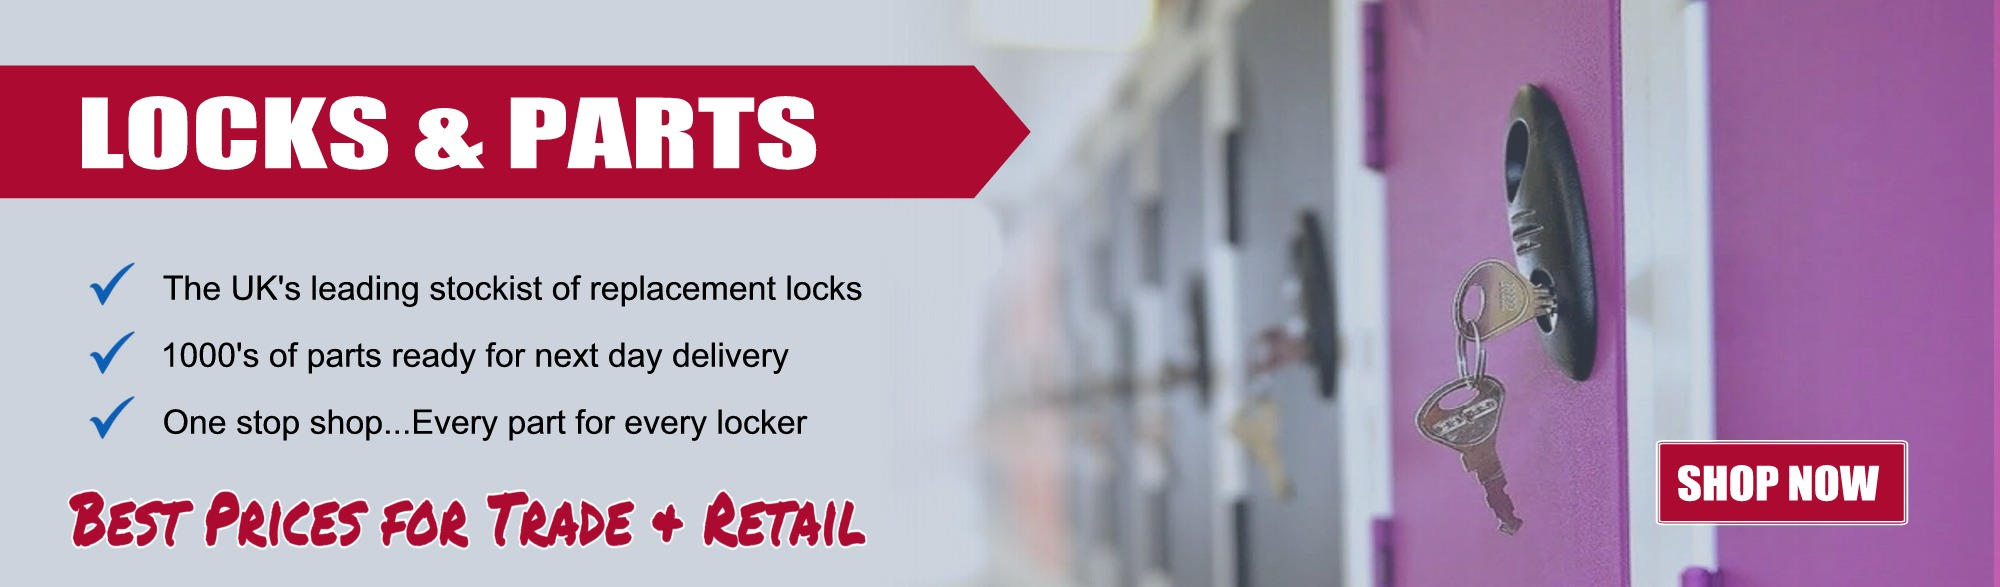 locks, keys replacement parts for every locker